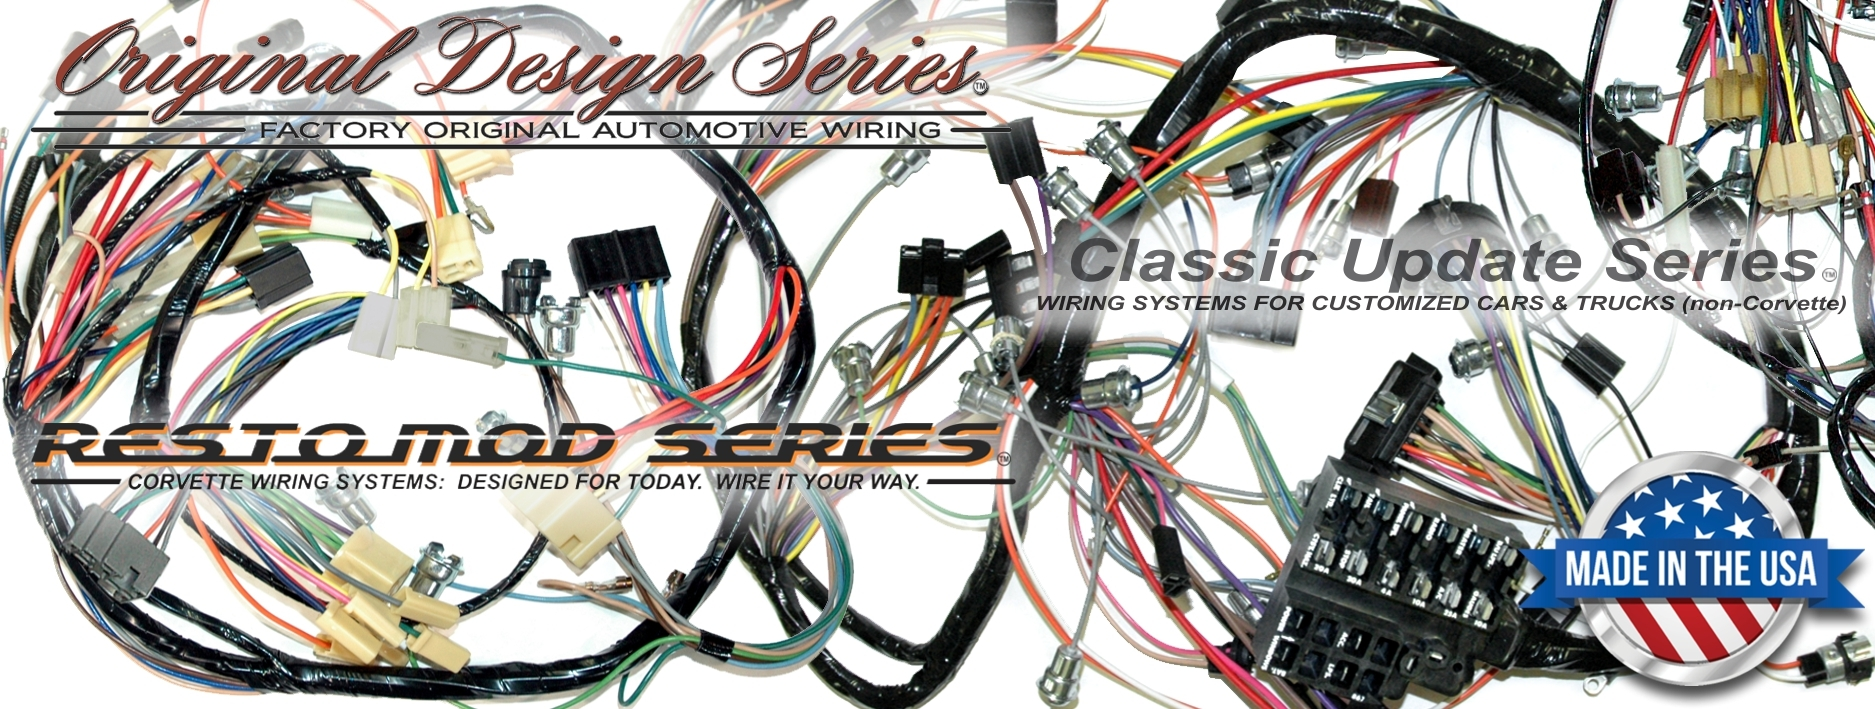 Exact Oem Reproduction Wiring Harnesses And Restomod Systems 1982 Jaguar Xjs Diagram Individual Complete